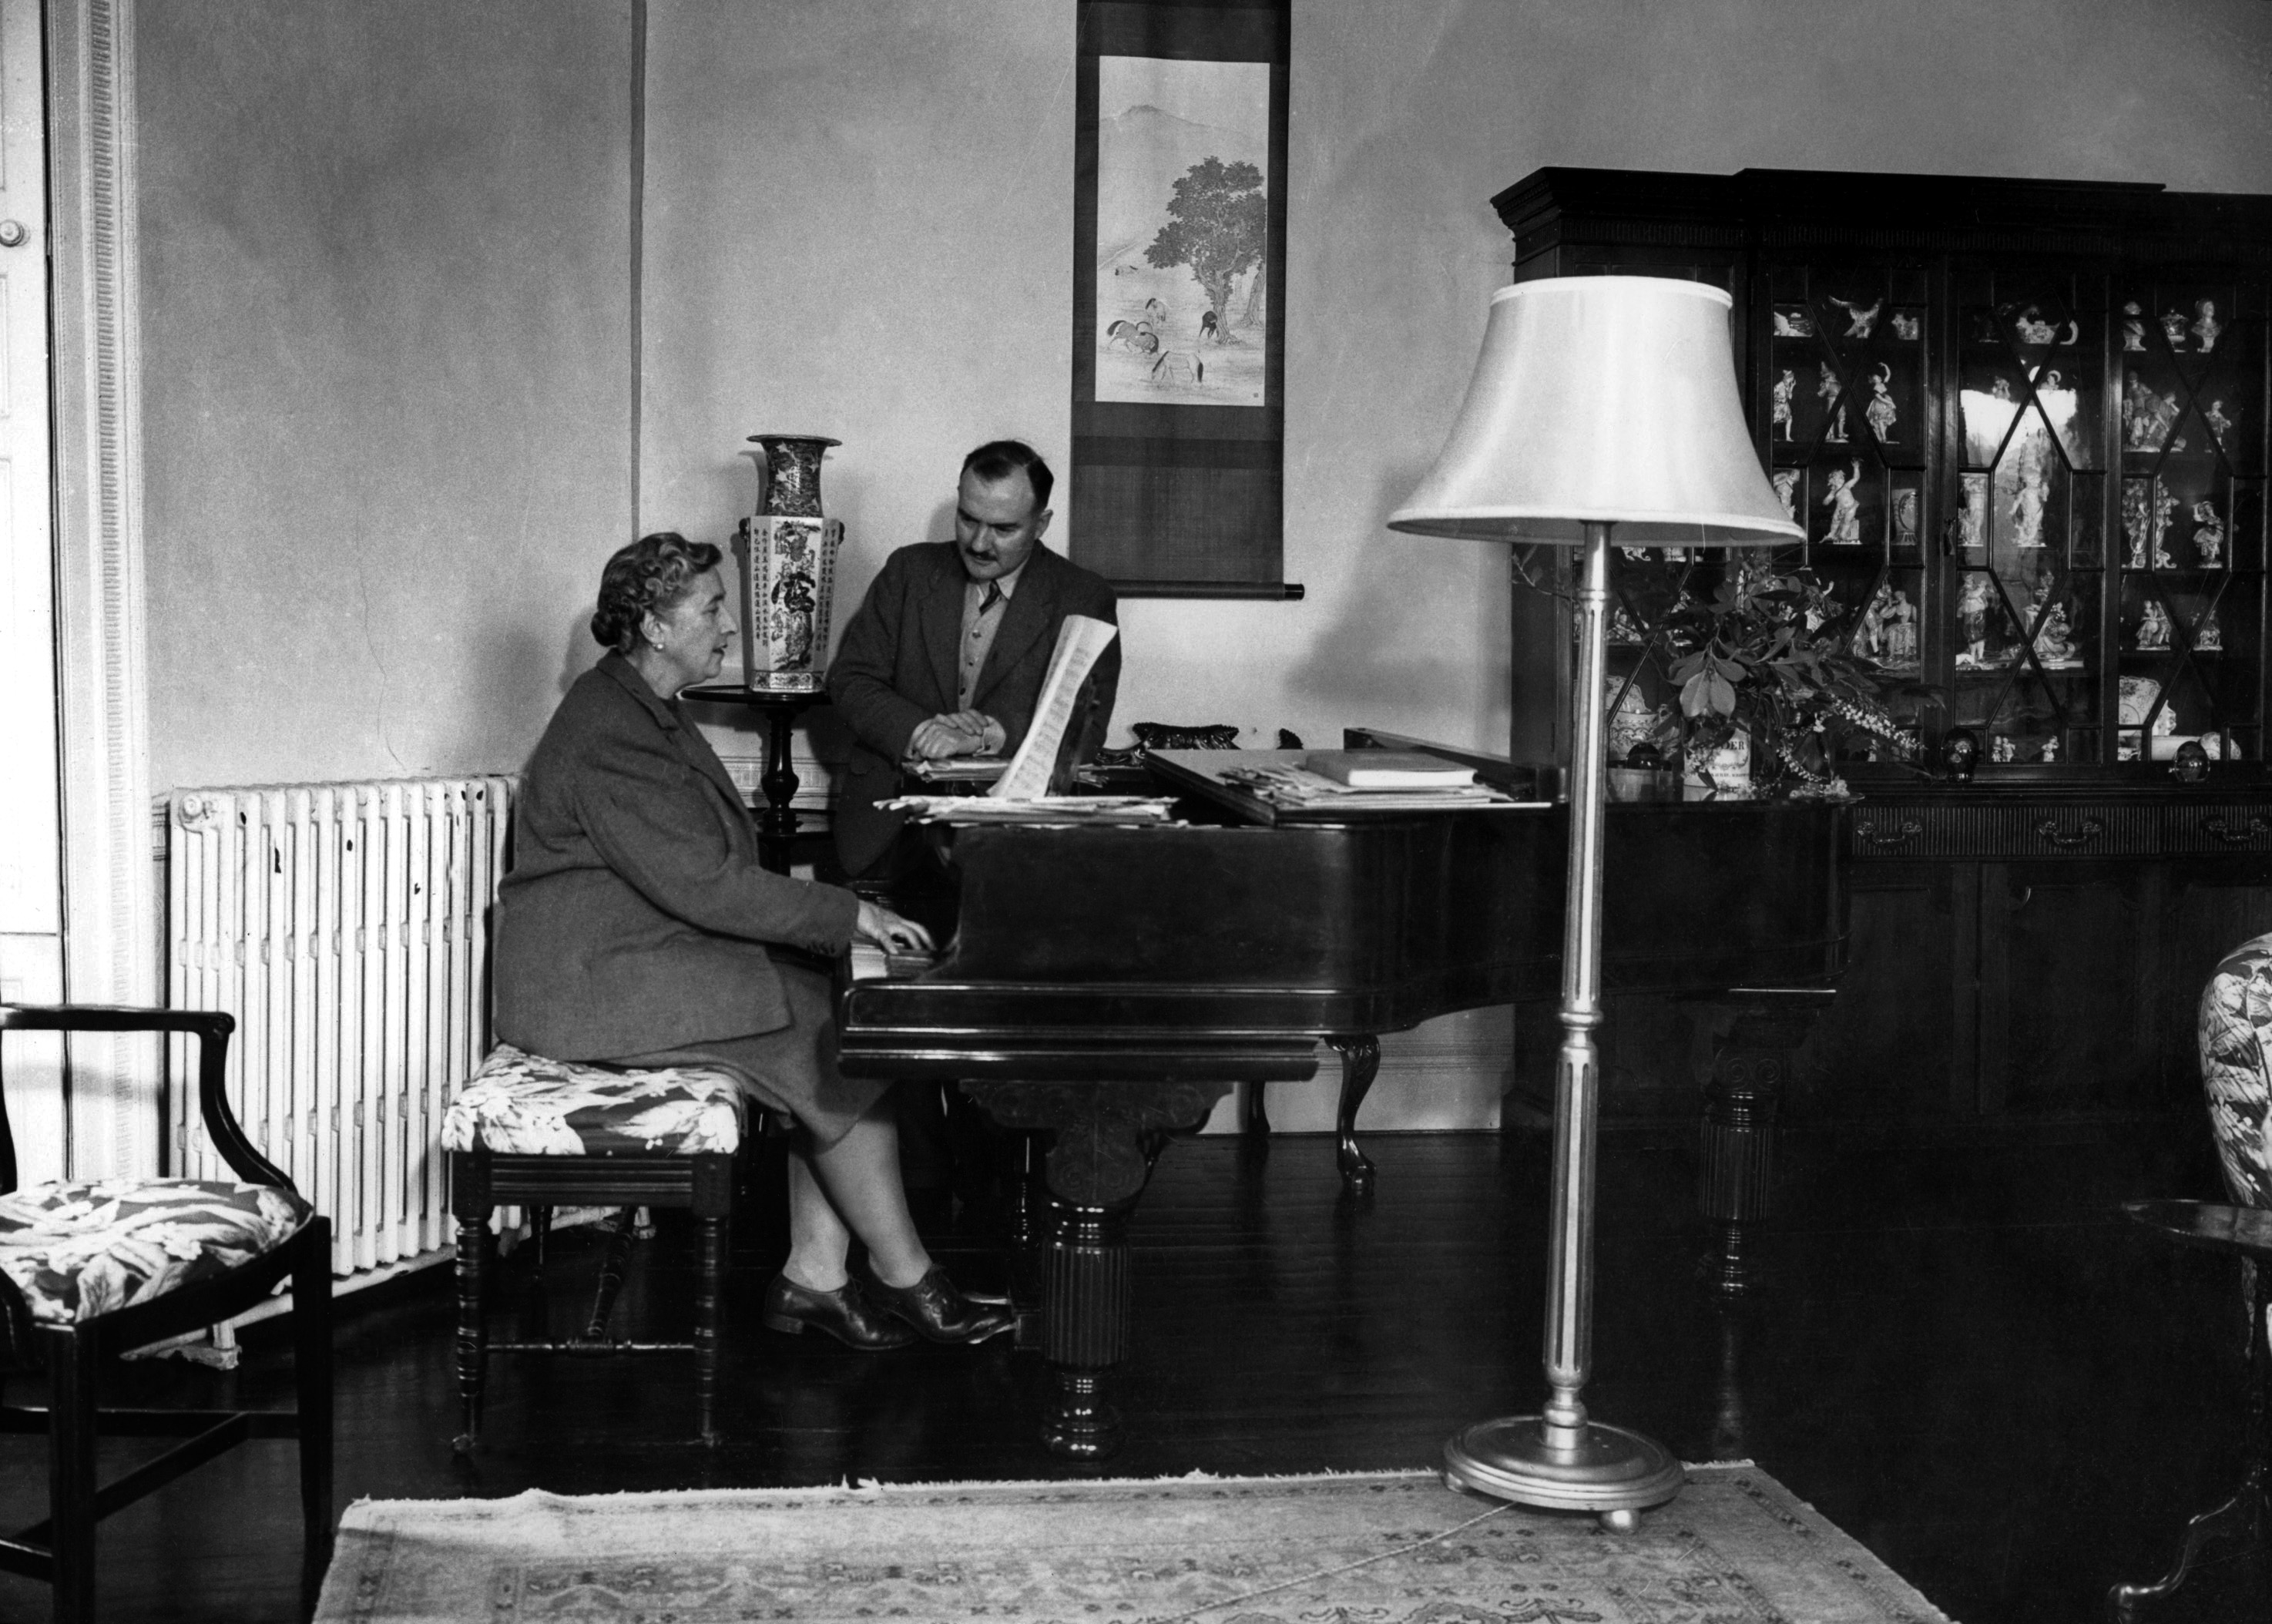 Dame Agatha Christie piano Crime writer novelist